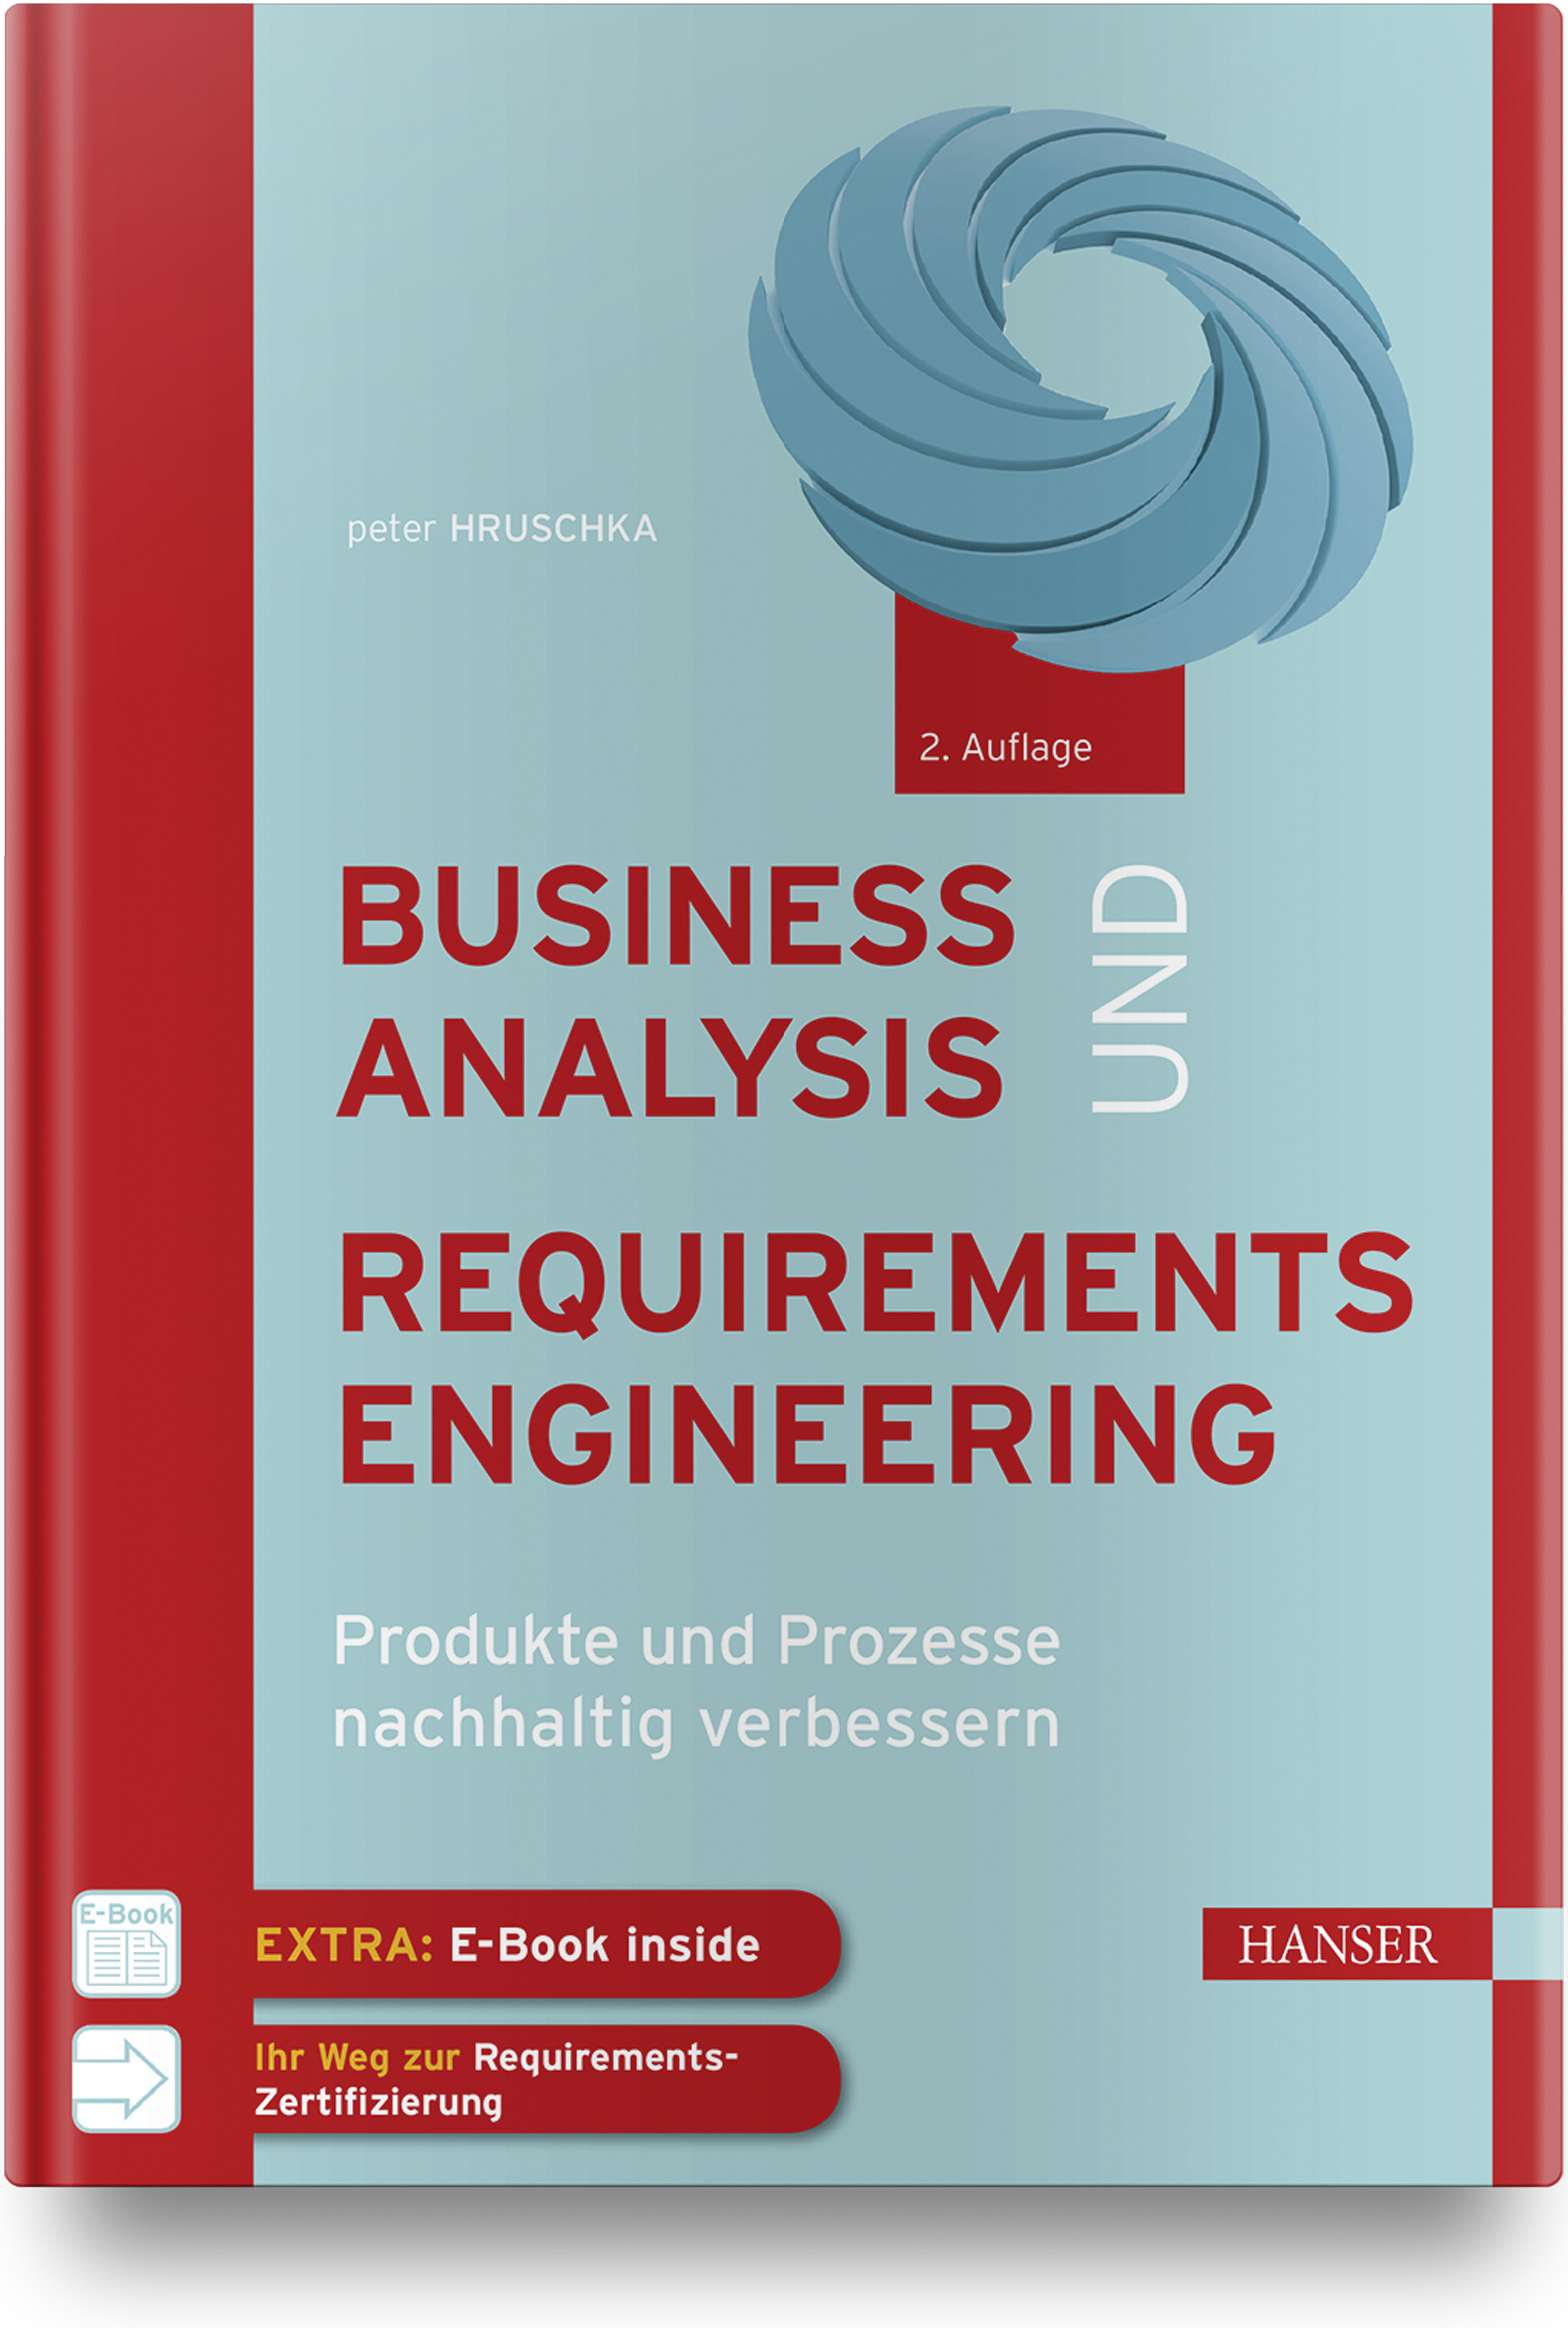 Hruschka, Business Analysis und Requirements Engineering, 978-3-446-45589-4